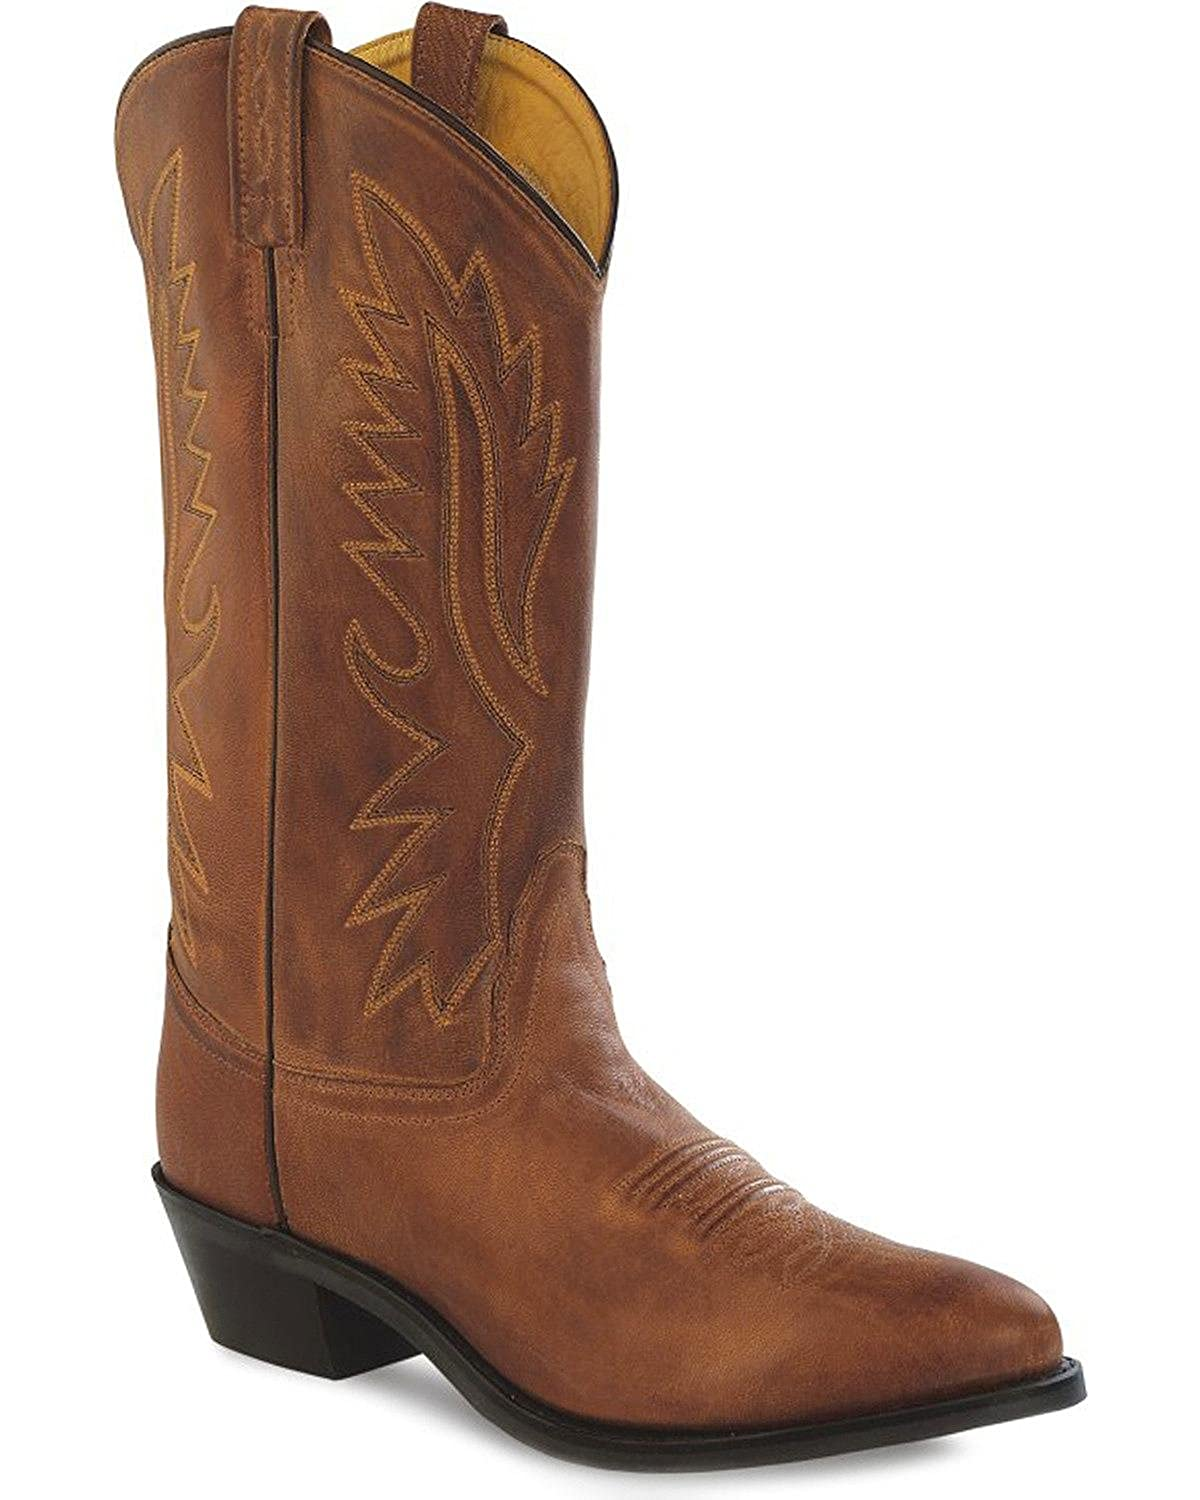 Old West Men's Polanil Western Cowboy Boot - Ow2010